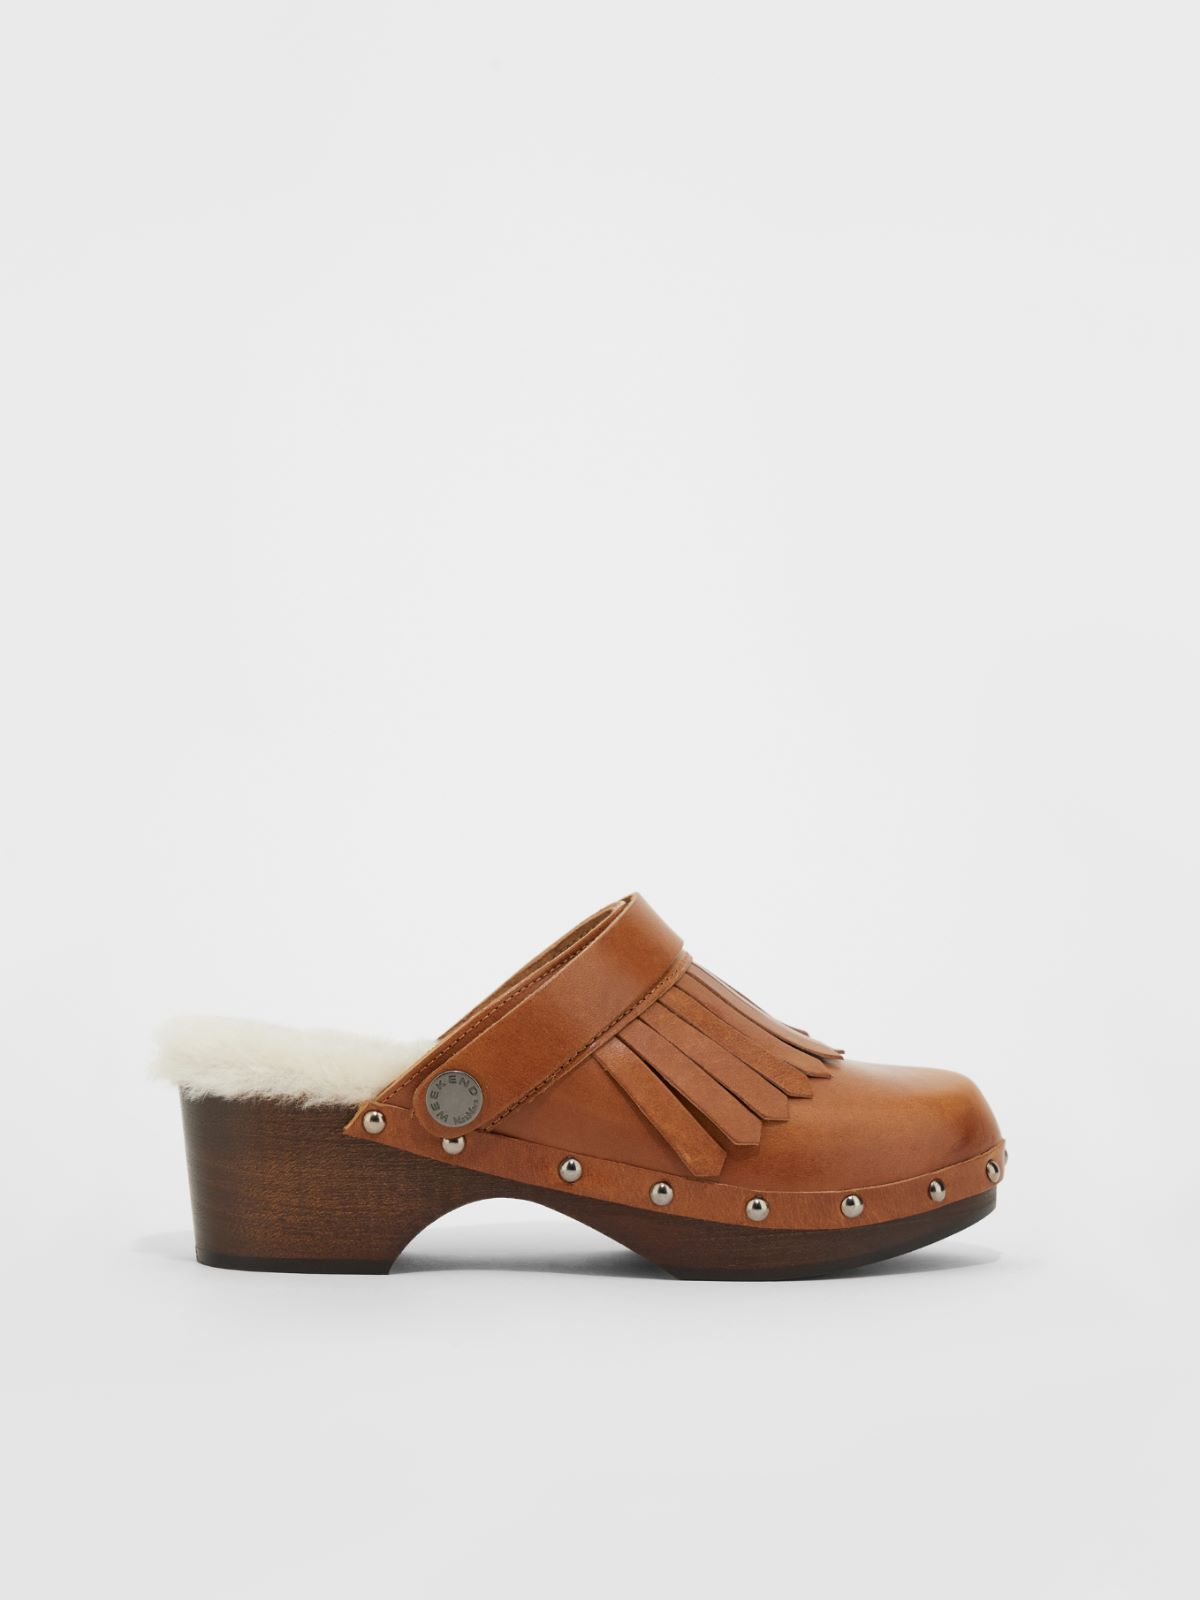 Leather and wood clogs Weekend Maxmara